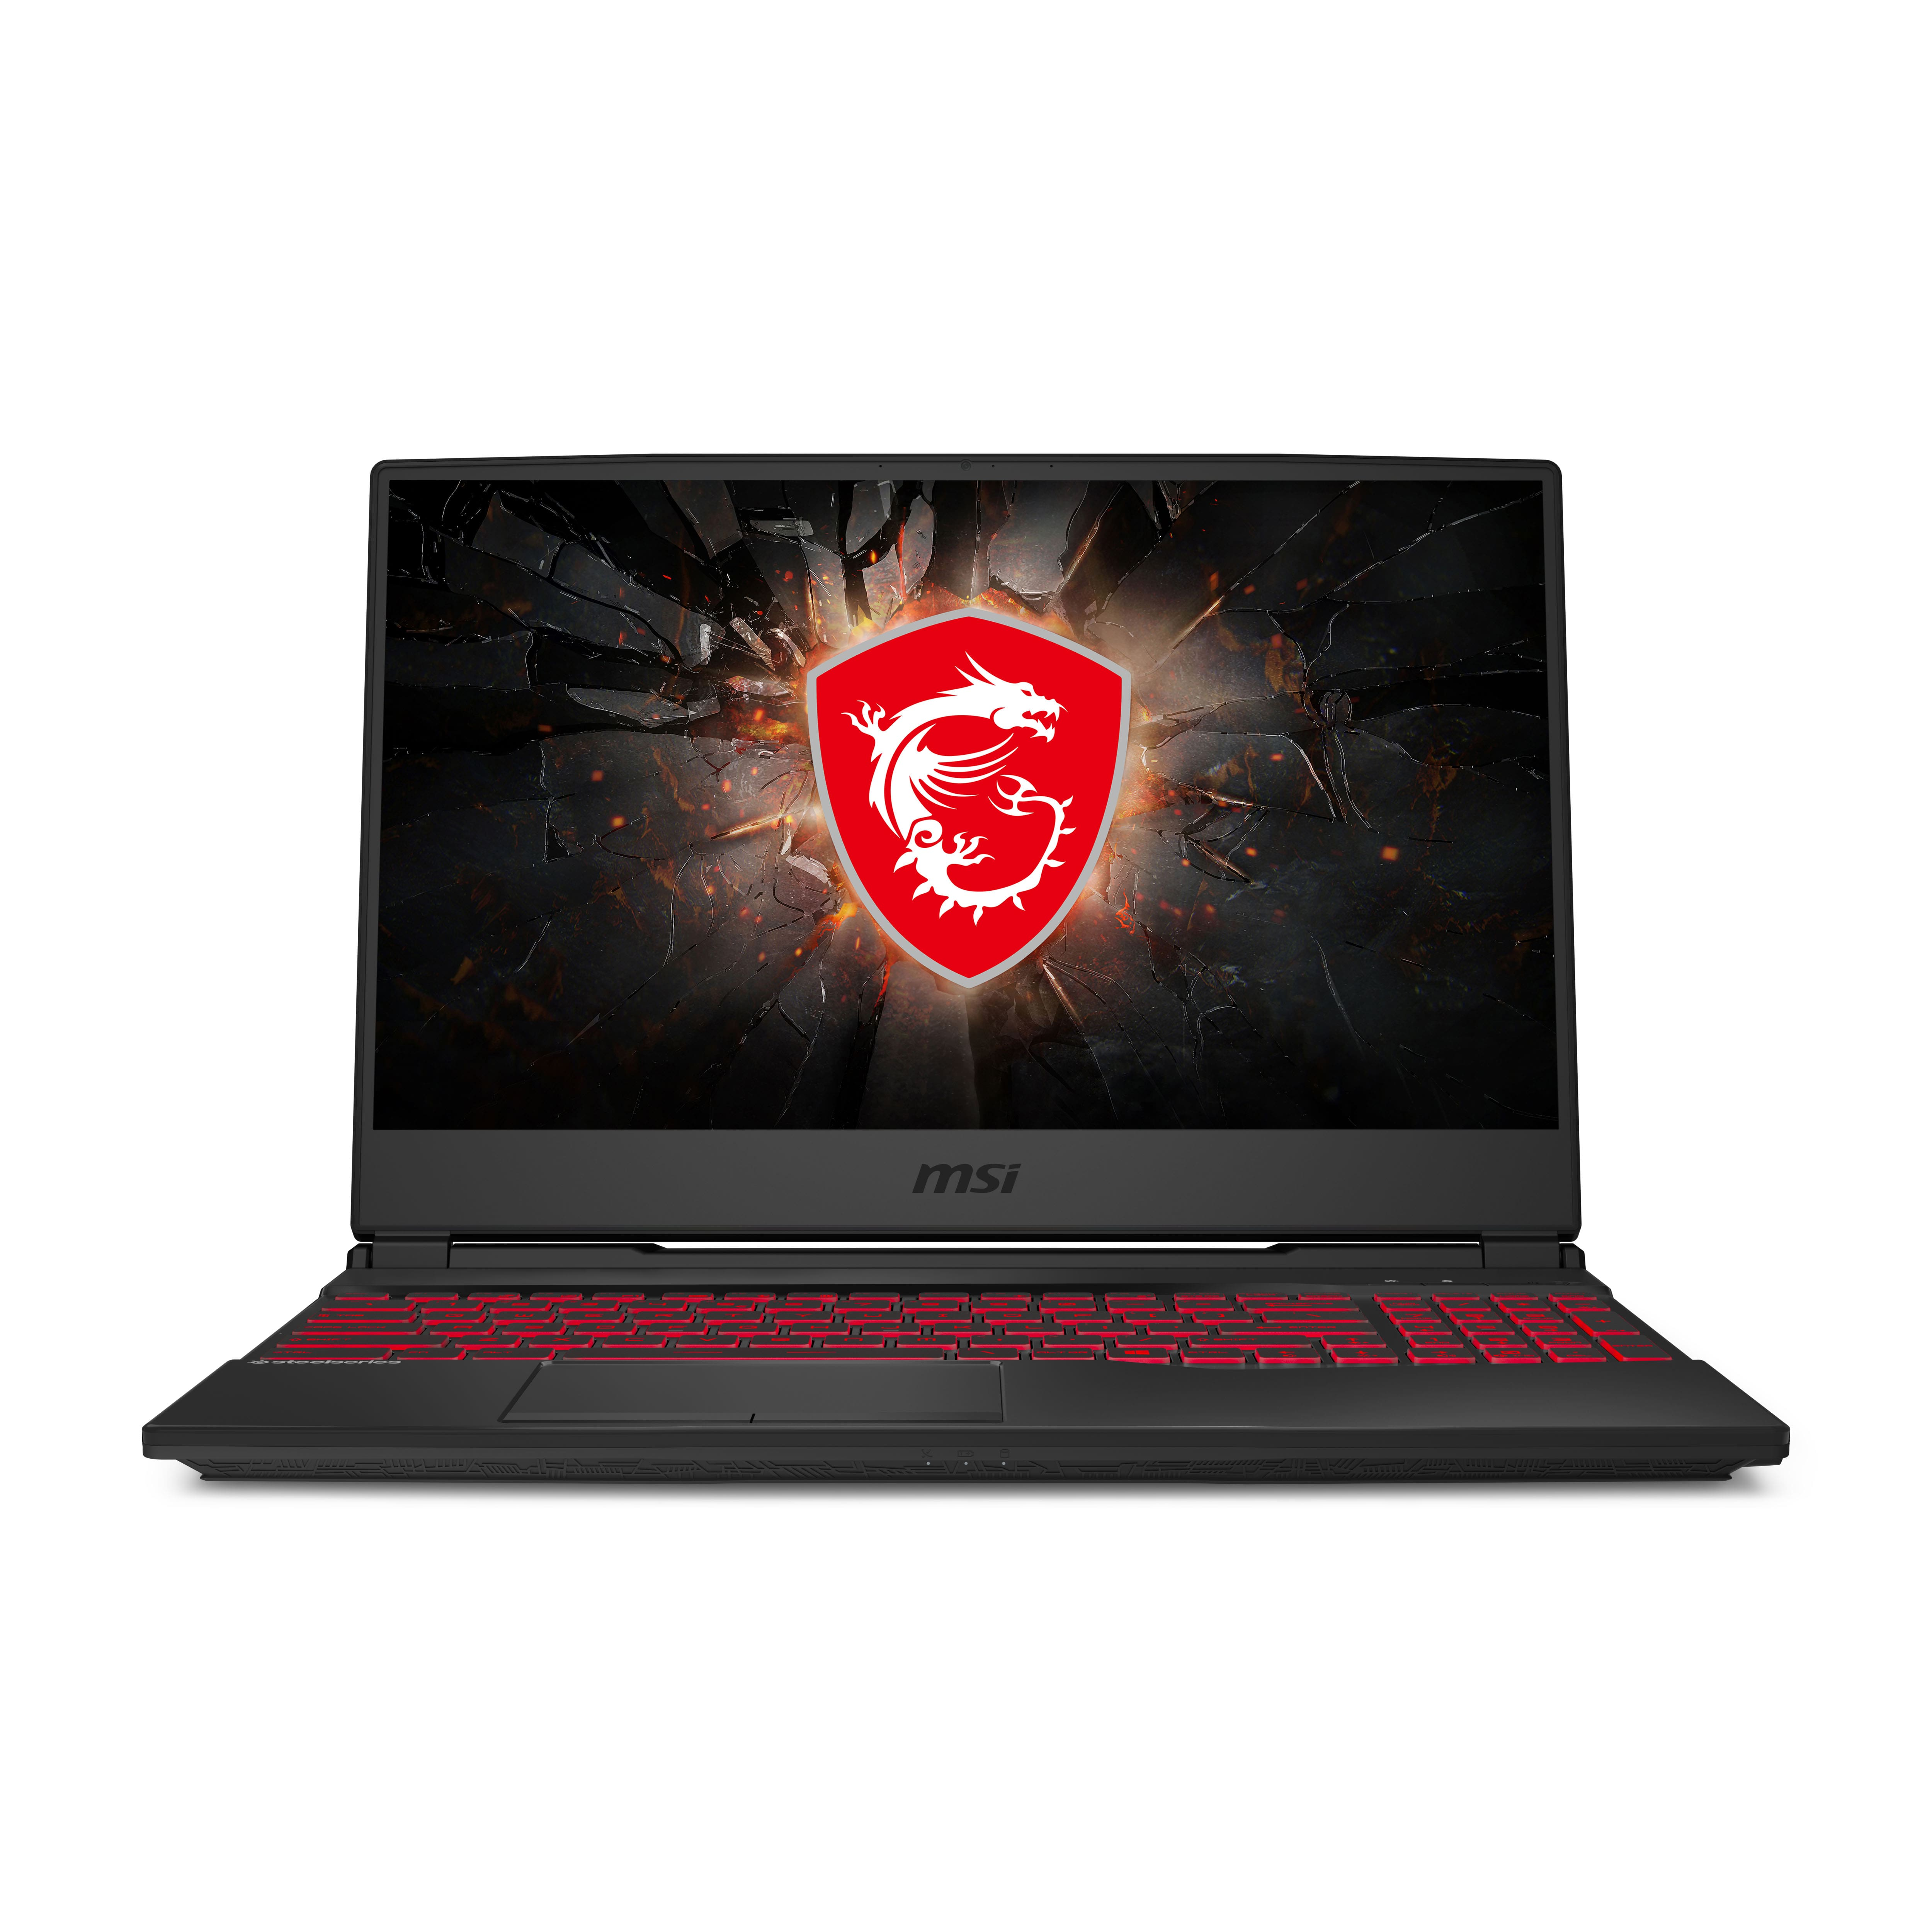 "MSI GE75 Raider 17.3"" Gaming Laptop, Intel Core i7-9750H, NVIDIA GeForce RTX2070, 16GB RAM, 1TB NVMe SSD + 1TB, Windows 10, VR Ready, Aluminum Black, GE75668 $1499"